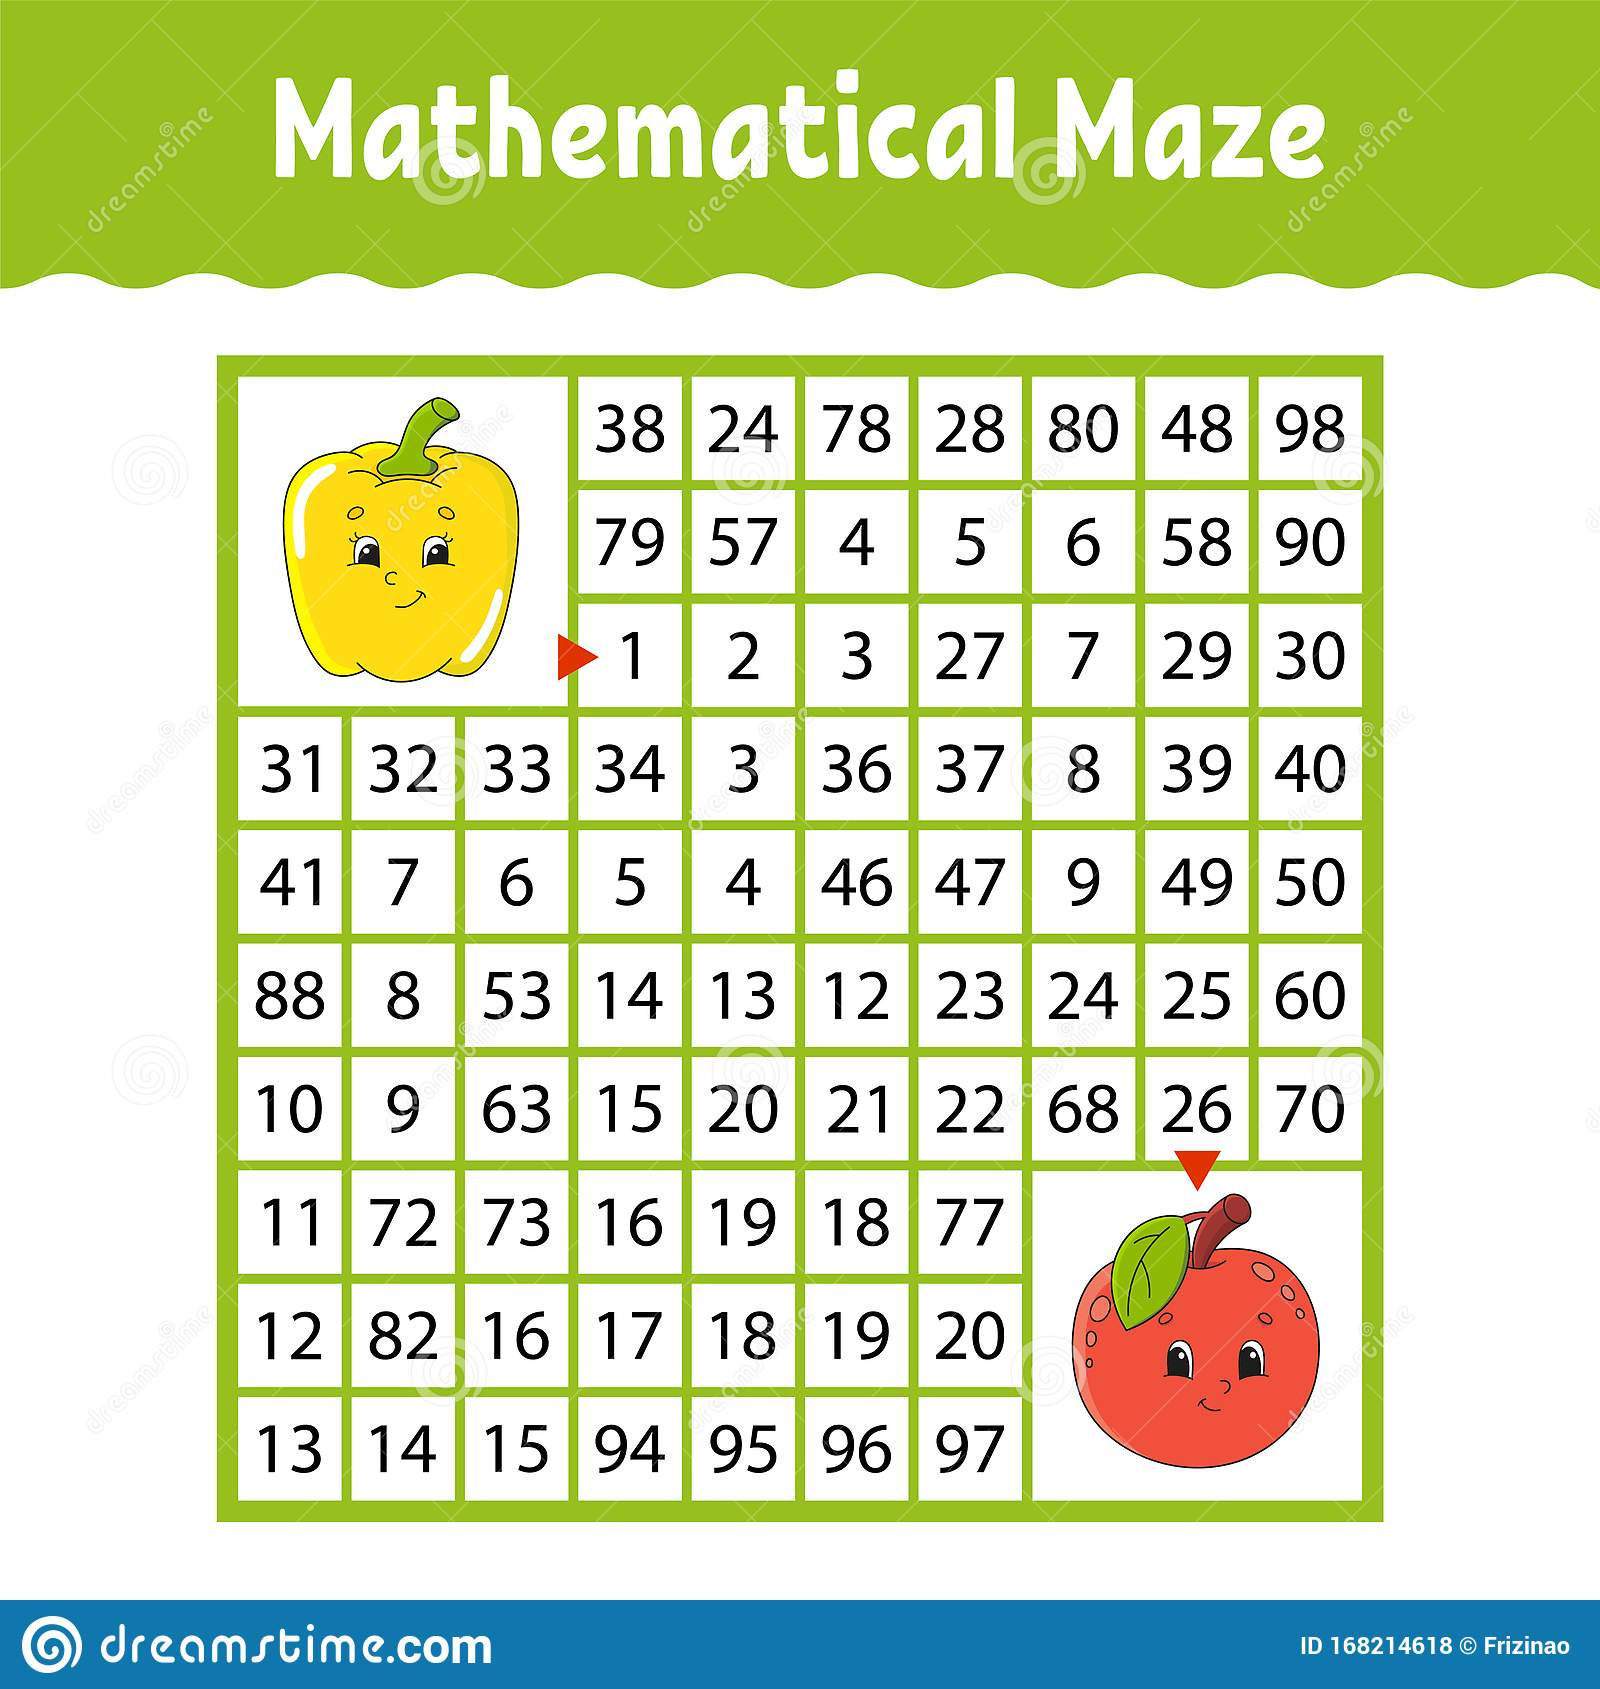 Vegetable Pepper Fruit Apple Mathematical Square Maze